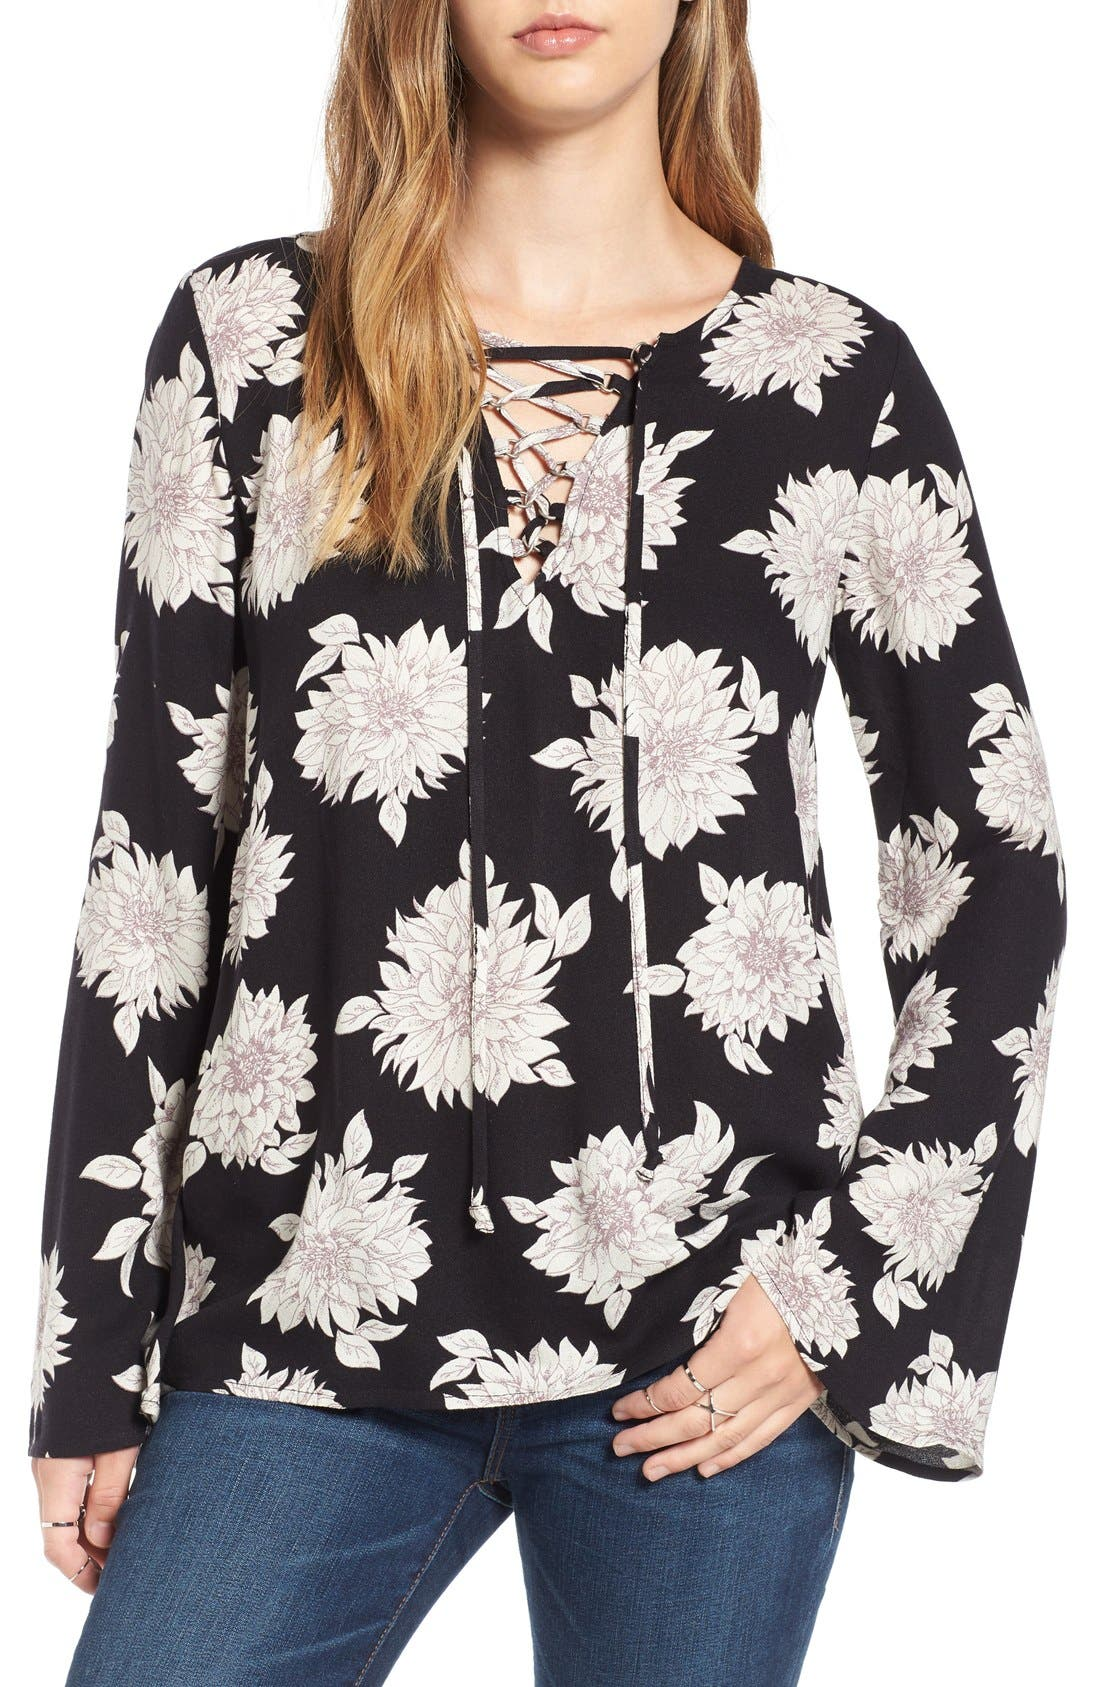 Alternate Image 1 Selected - Sun & Shadow Floral Print Lace-Up Top